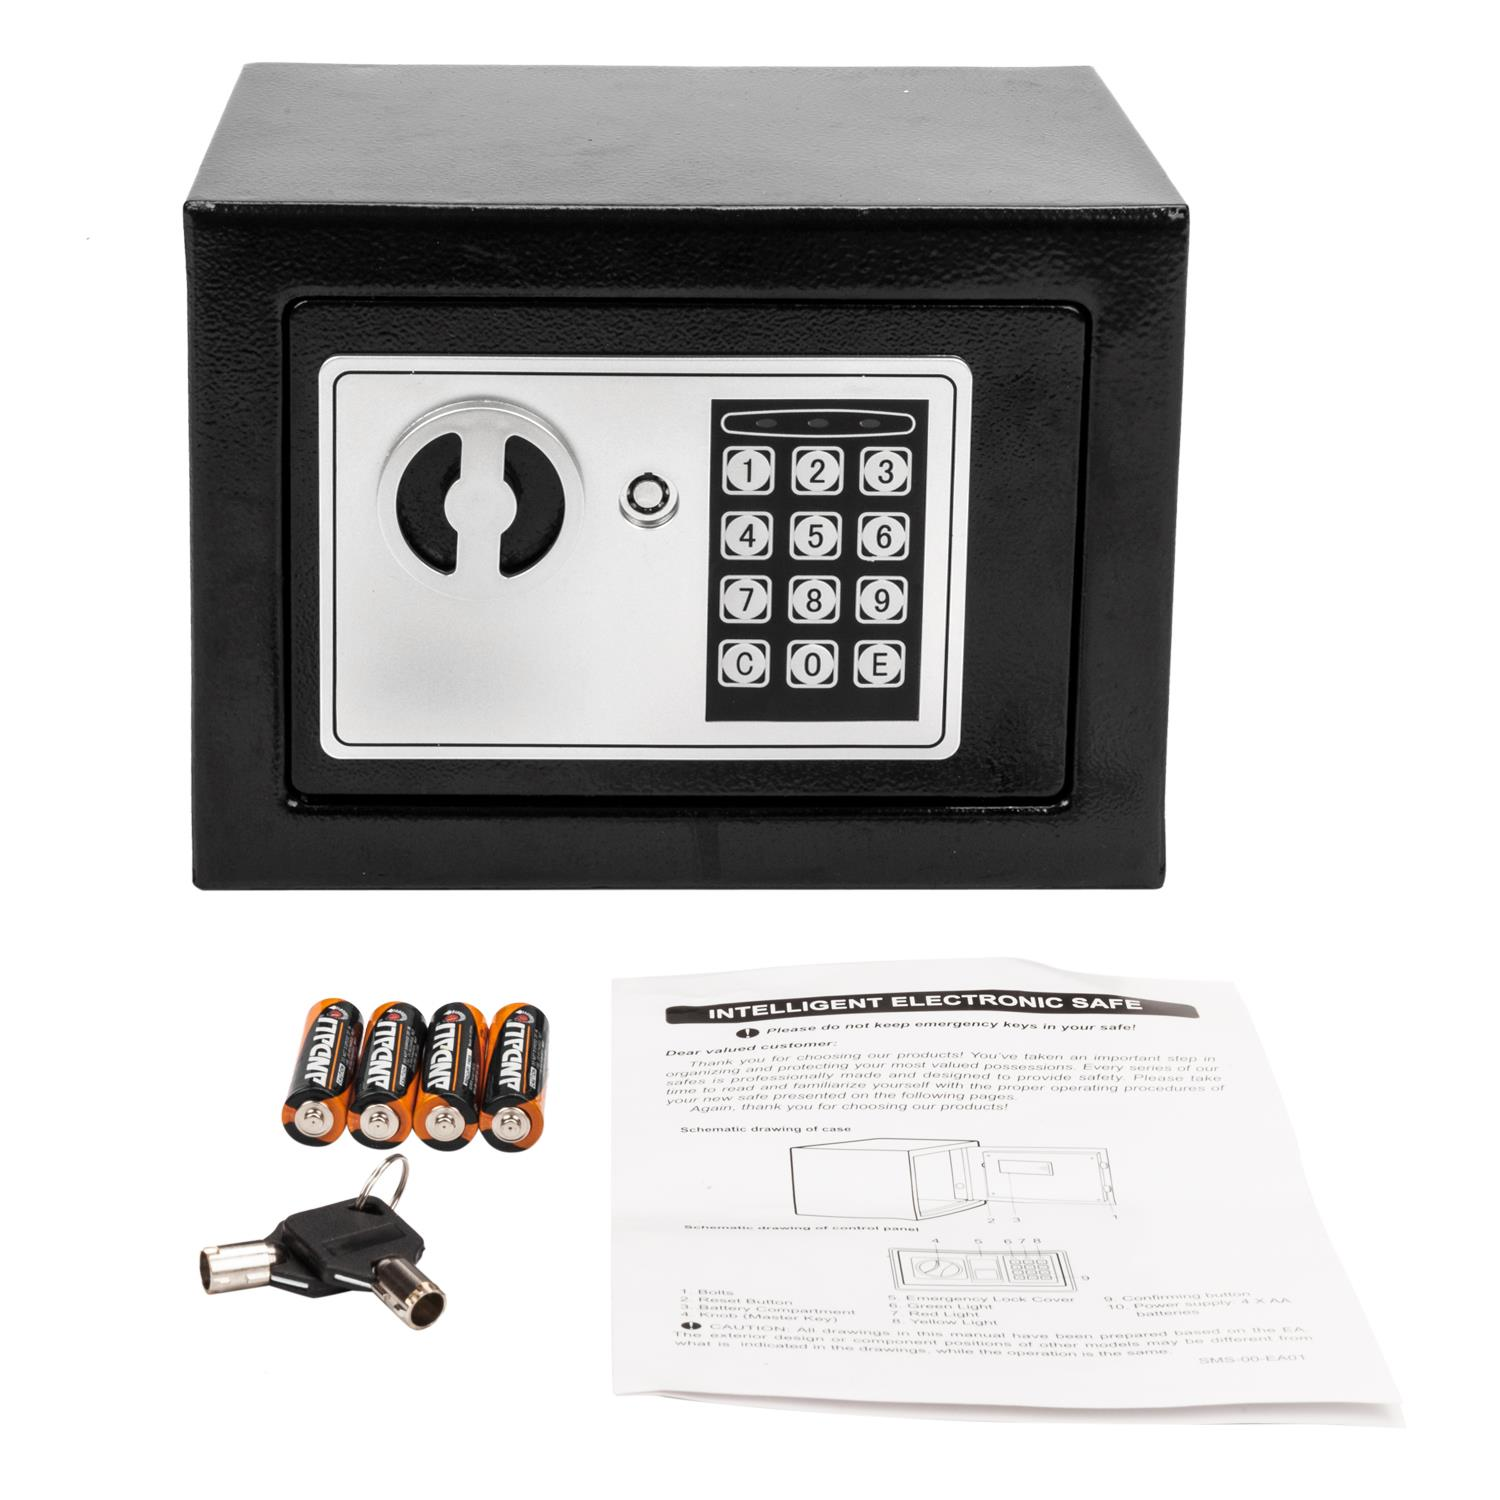 Small Depository Drop Safe /& Lock Box with Electronic Keypad for Home Hotel, Digital Security Safe Box 9.06x 6.69 x 6.69 Black